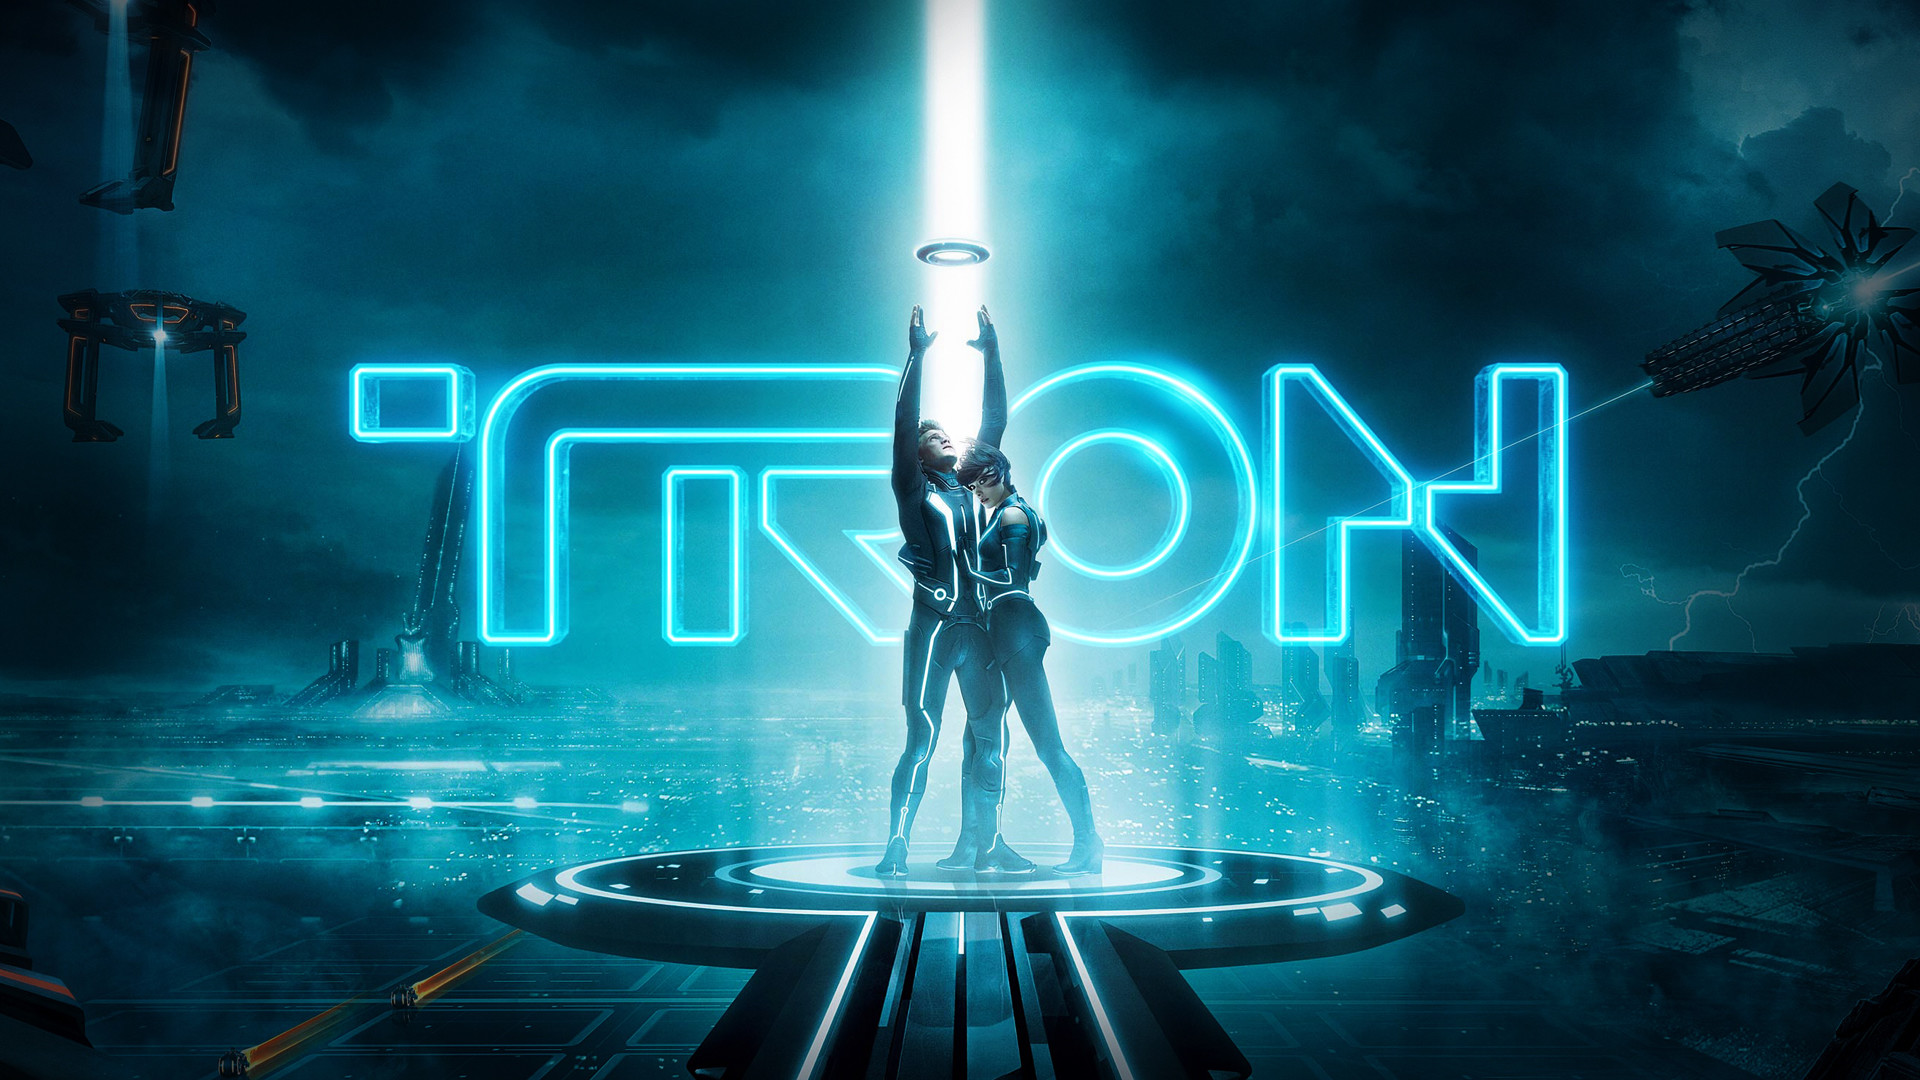 1920x1080 tron hd wallpaper. Â«Â«